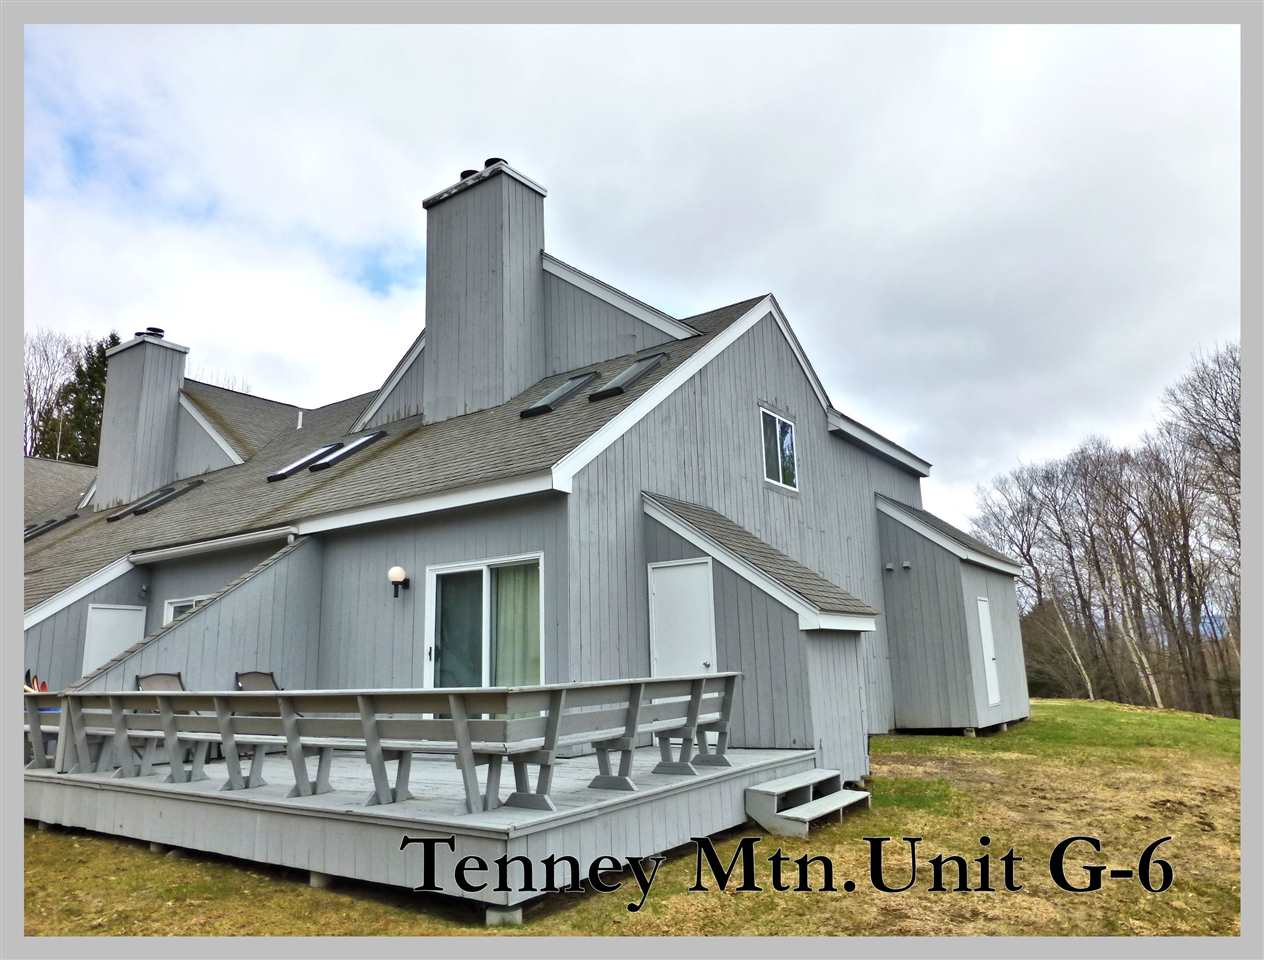 5 Tenney Brook Rd. Unit G-6, Plymouth, NH 03264